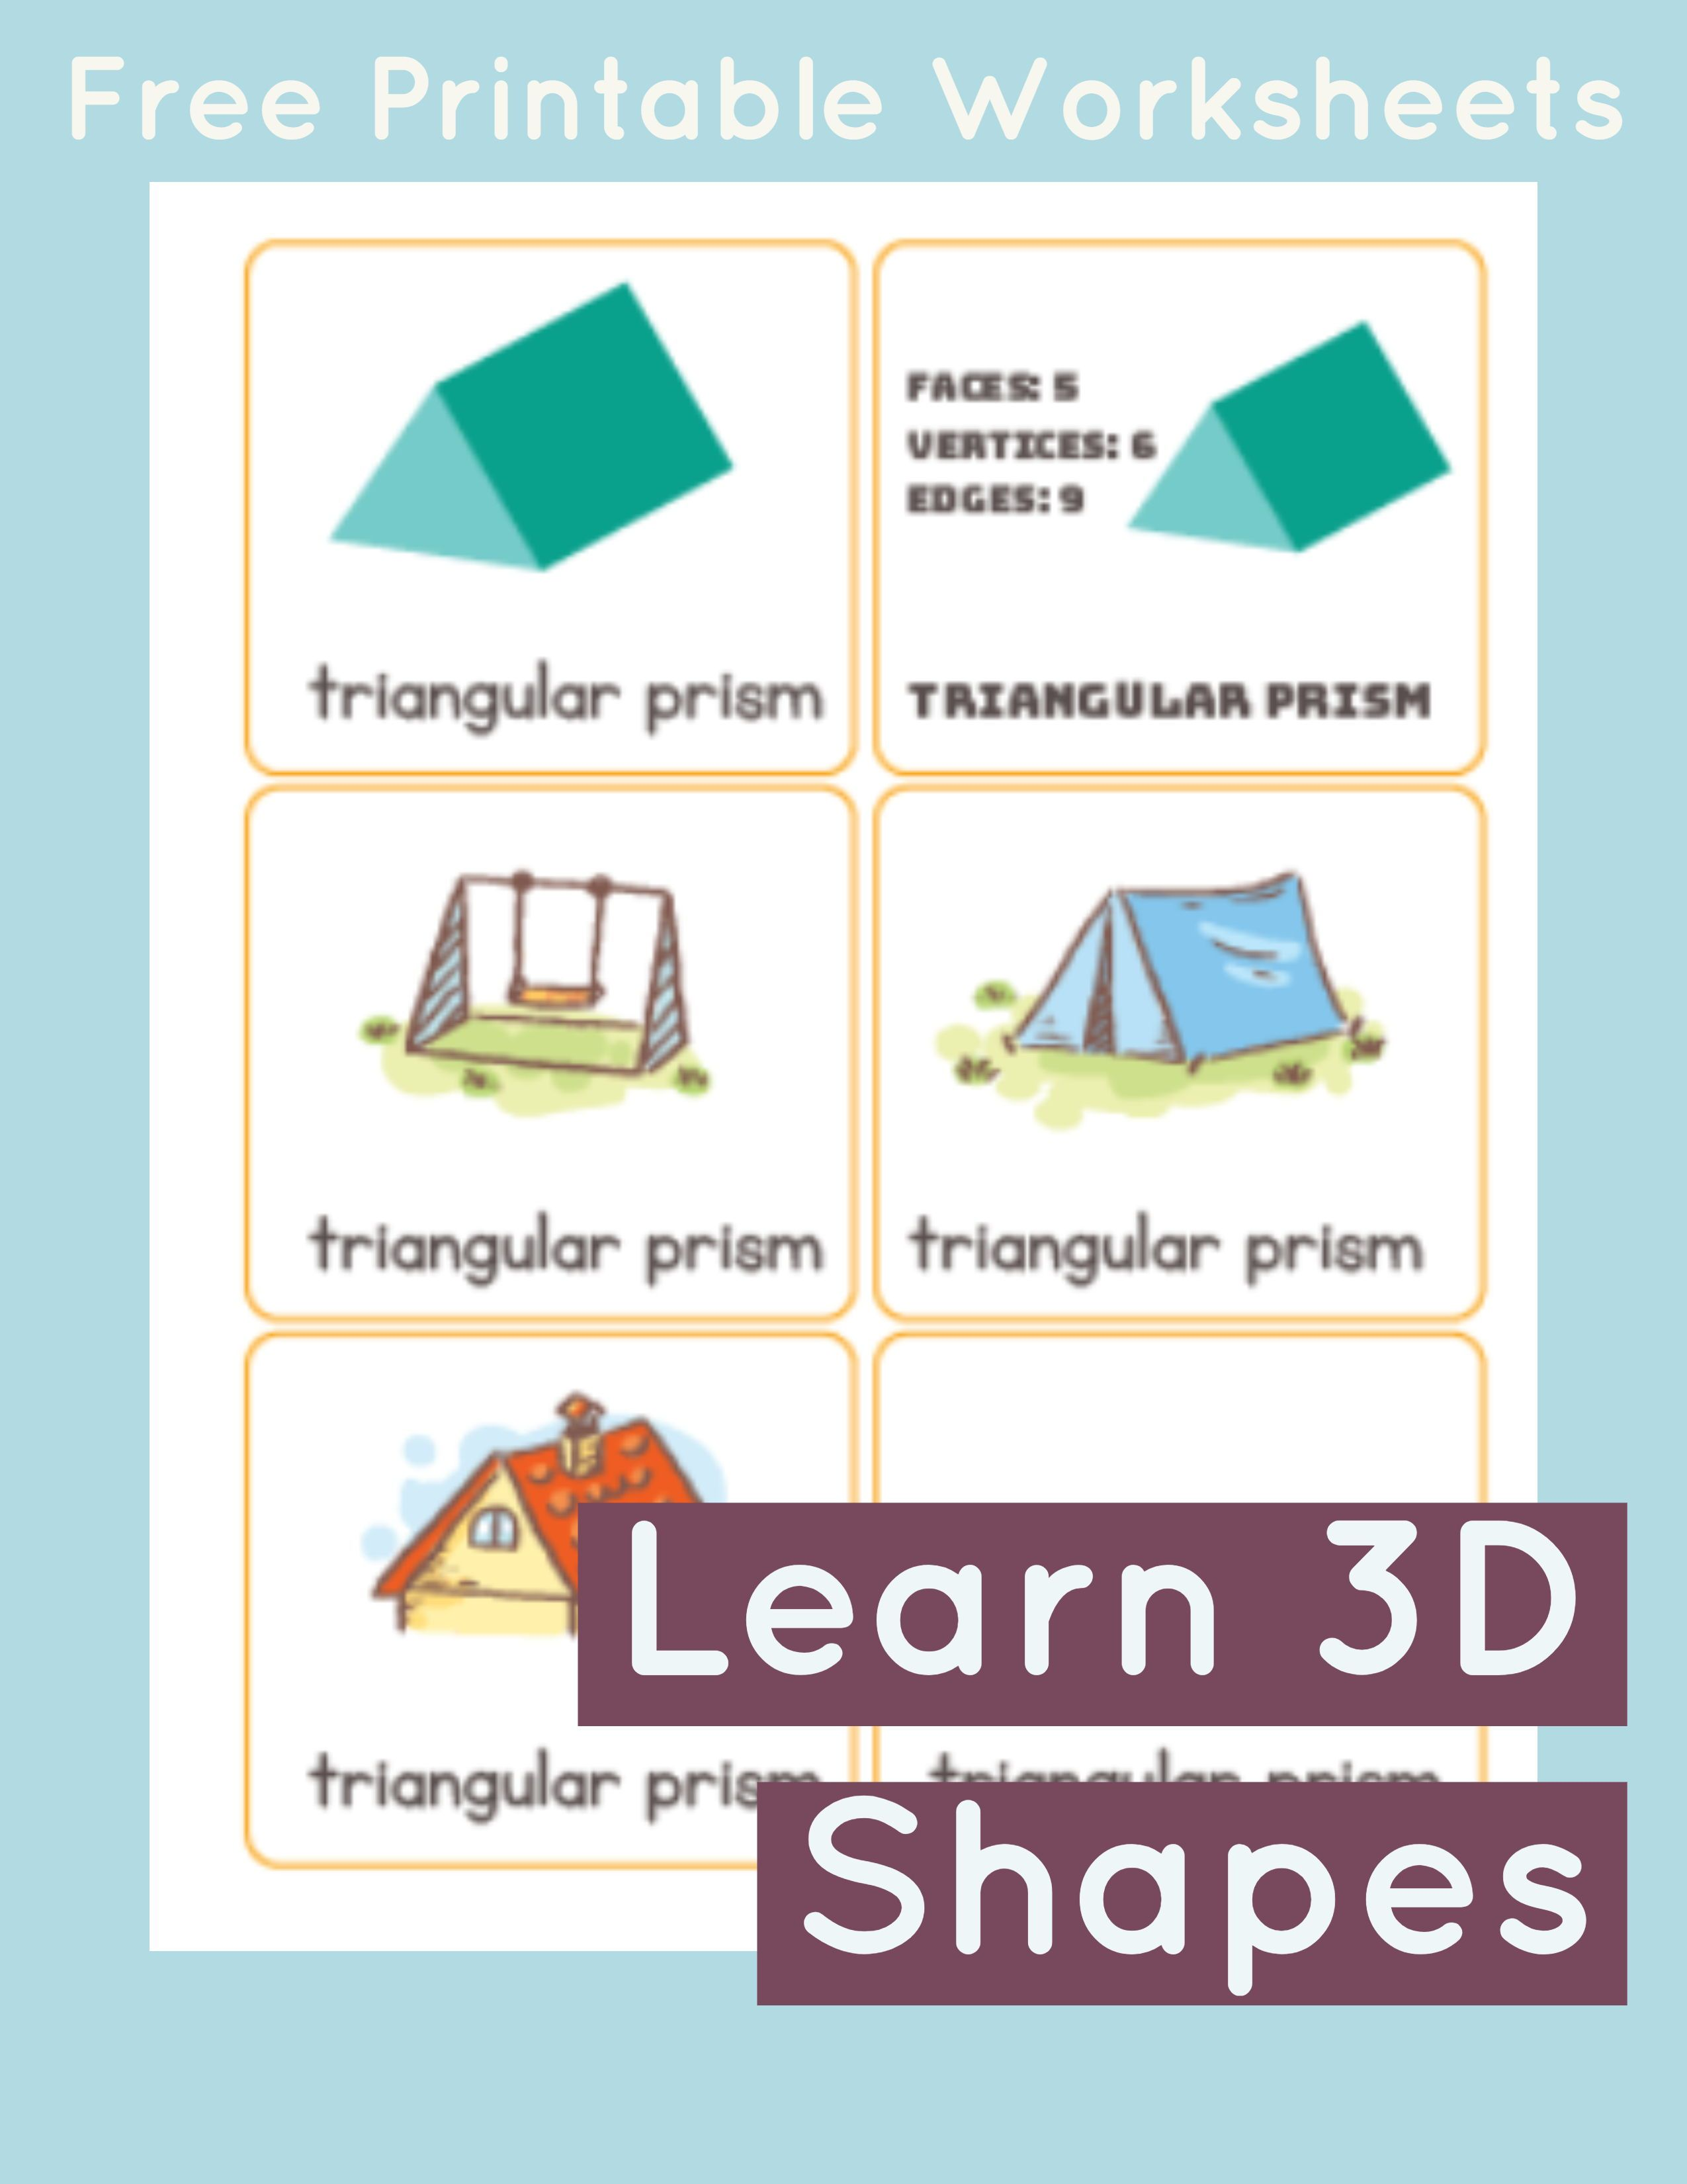 Worksheet On Solid Shapes For Grade 5   Printable Worksheets and Activities  for Teachers [ 3301 x 2550 Pixel ]